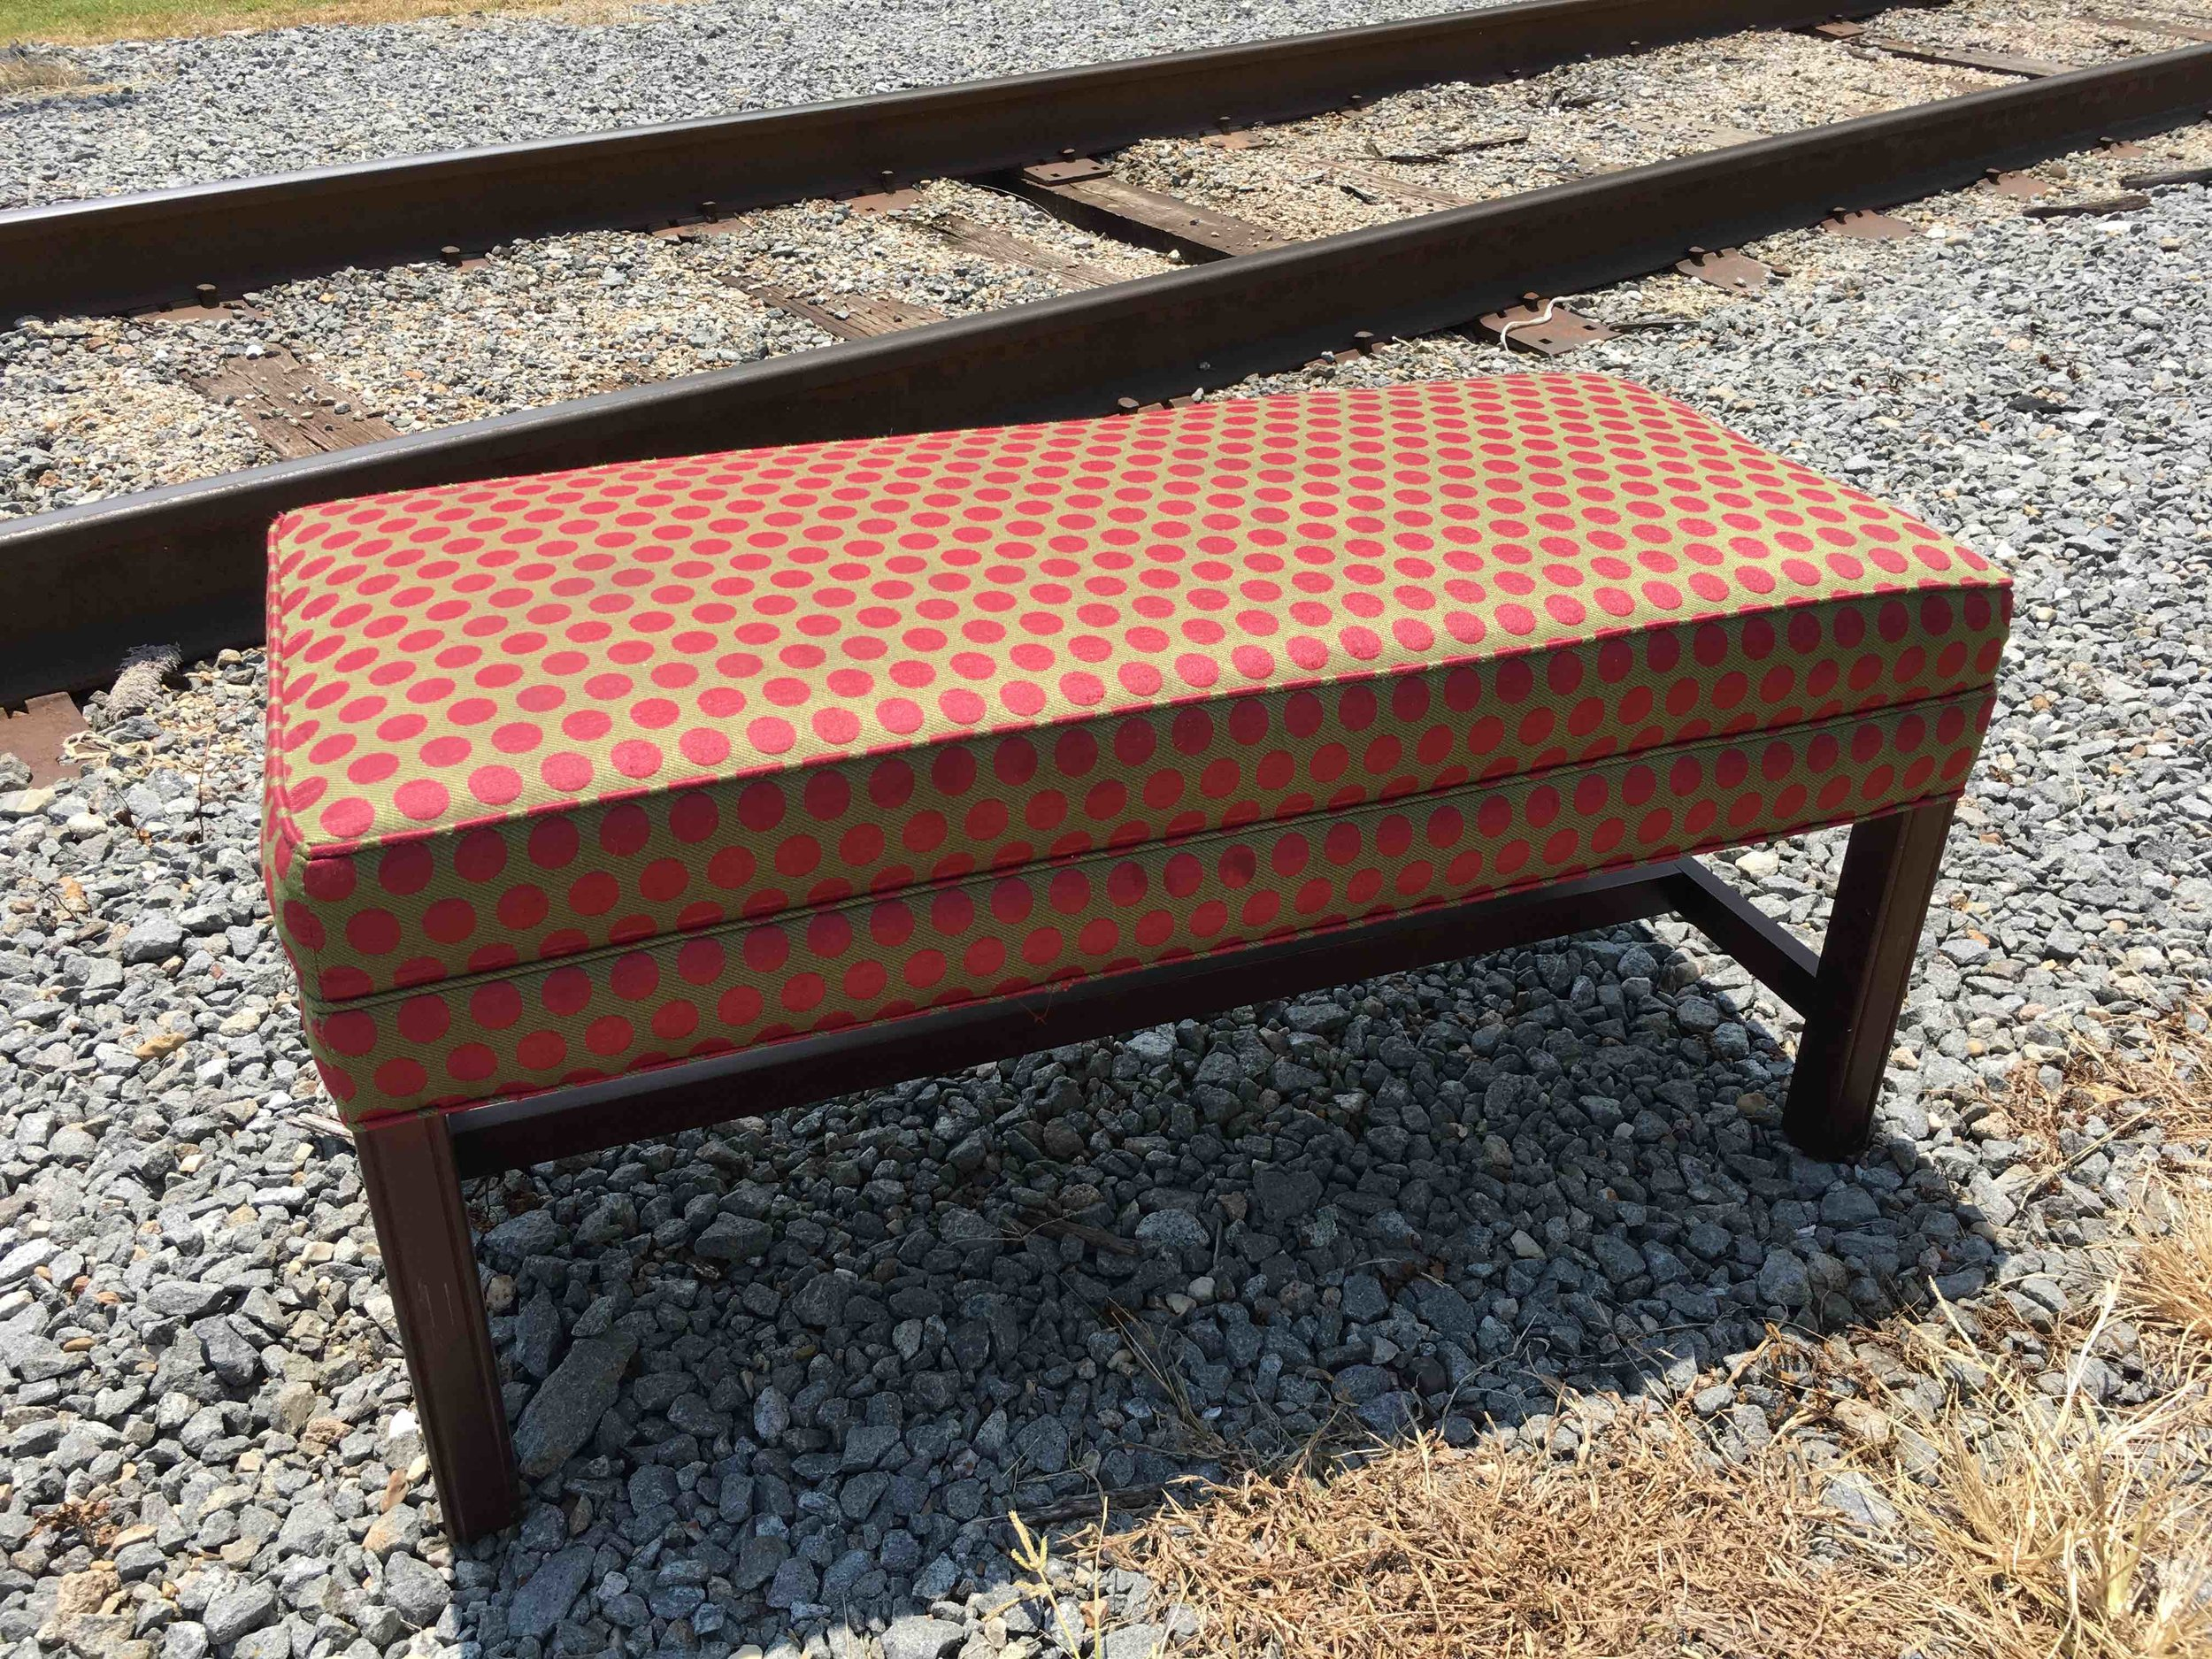 GB Polka Dot Bench